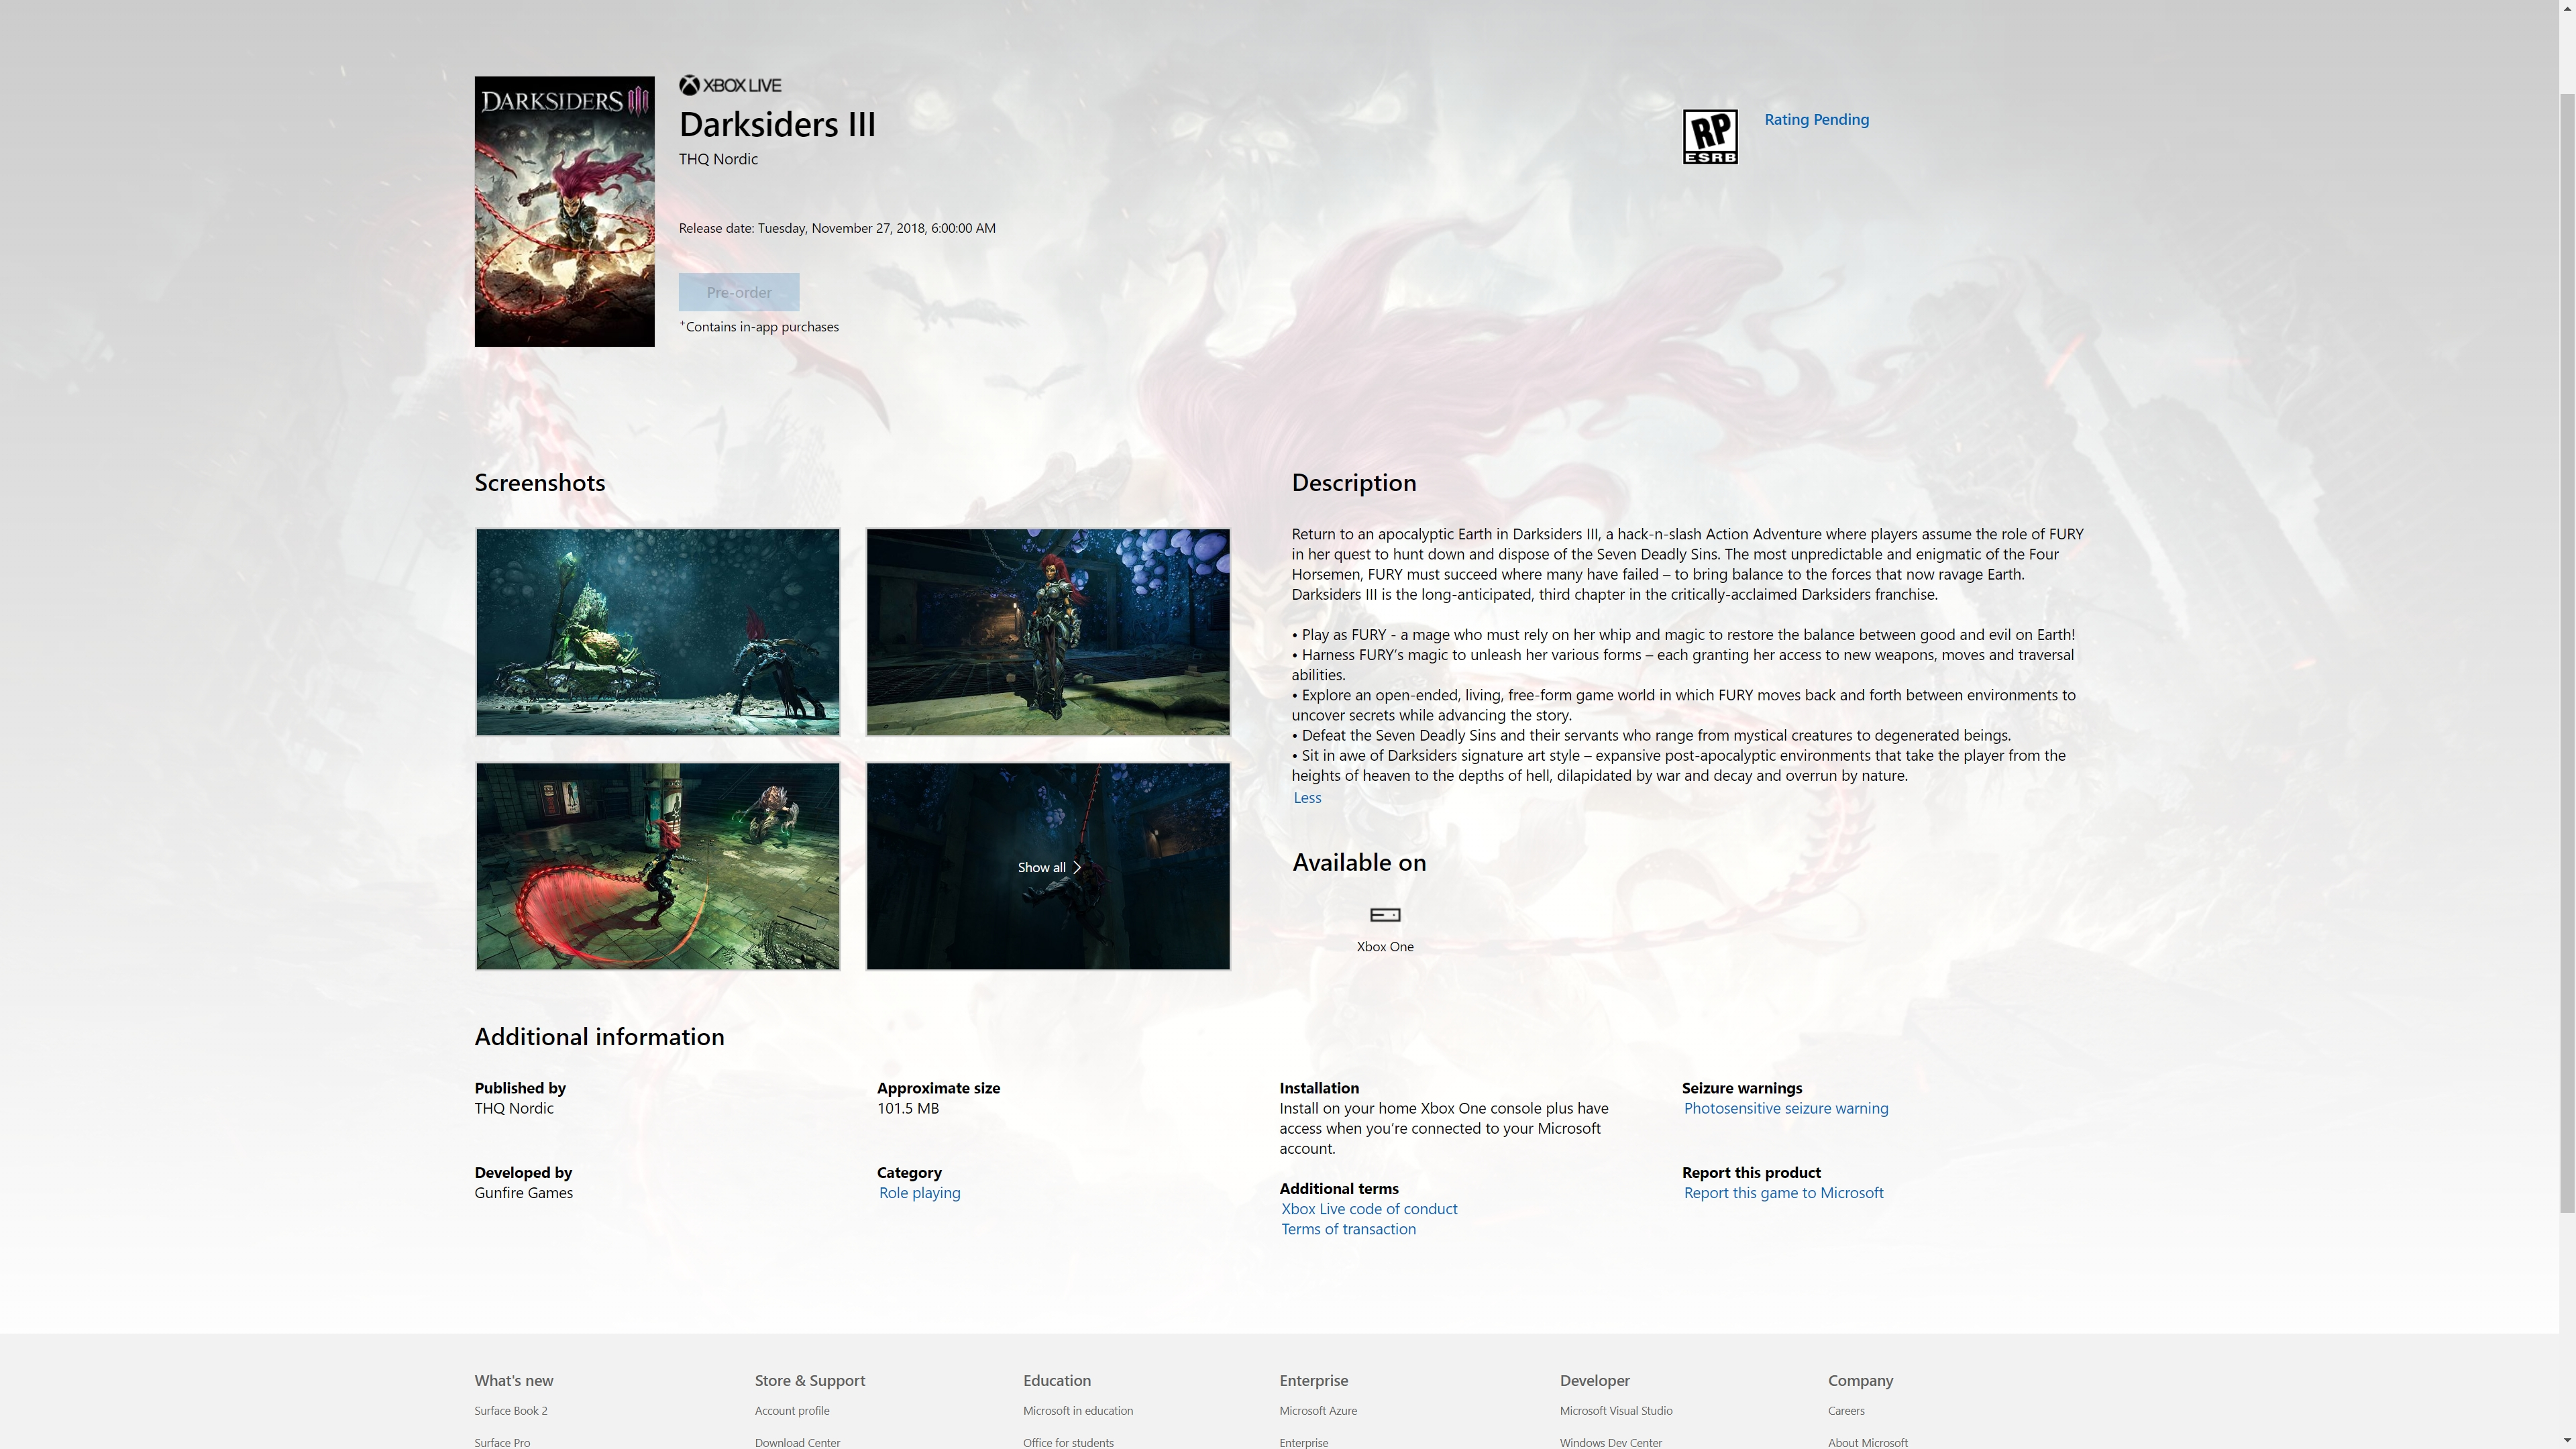 Darksiders III Release Date Confirmed, $400 Collector's Edition Revealed